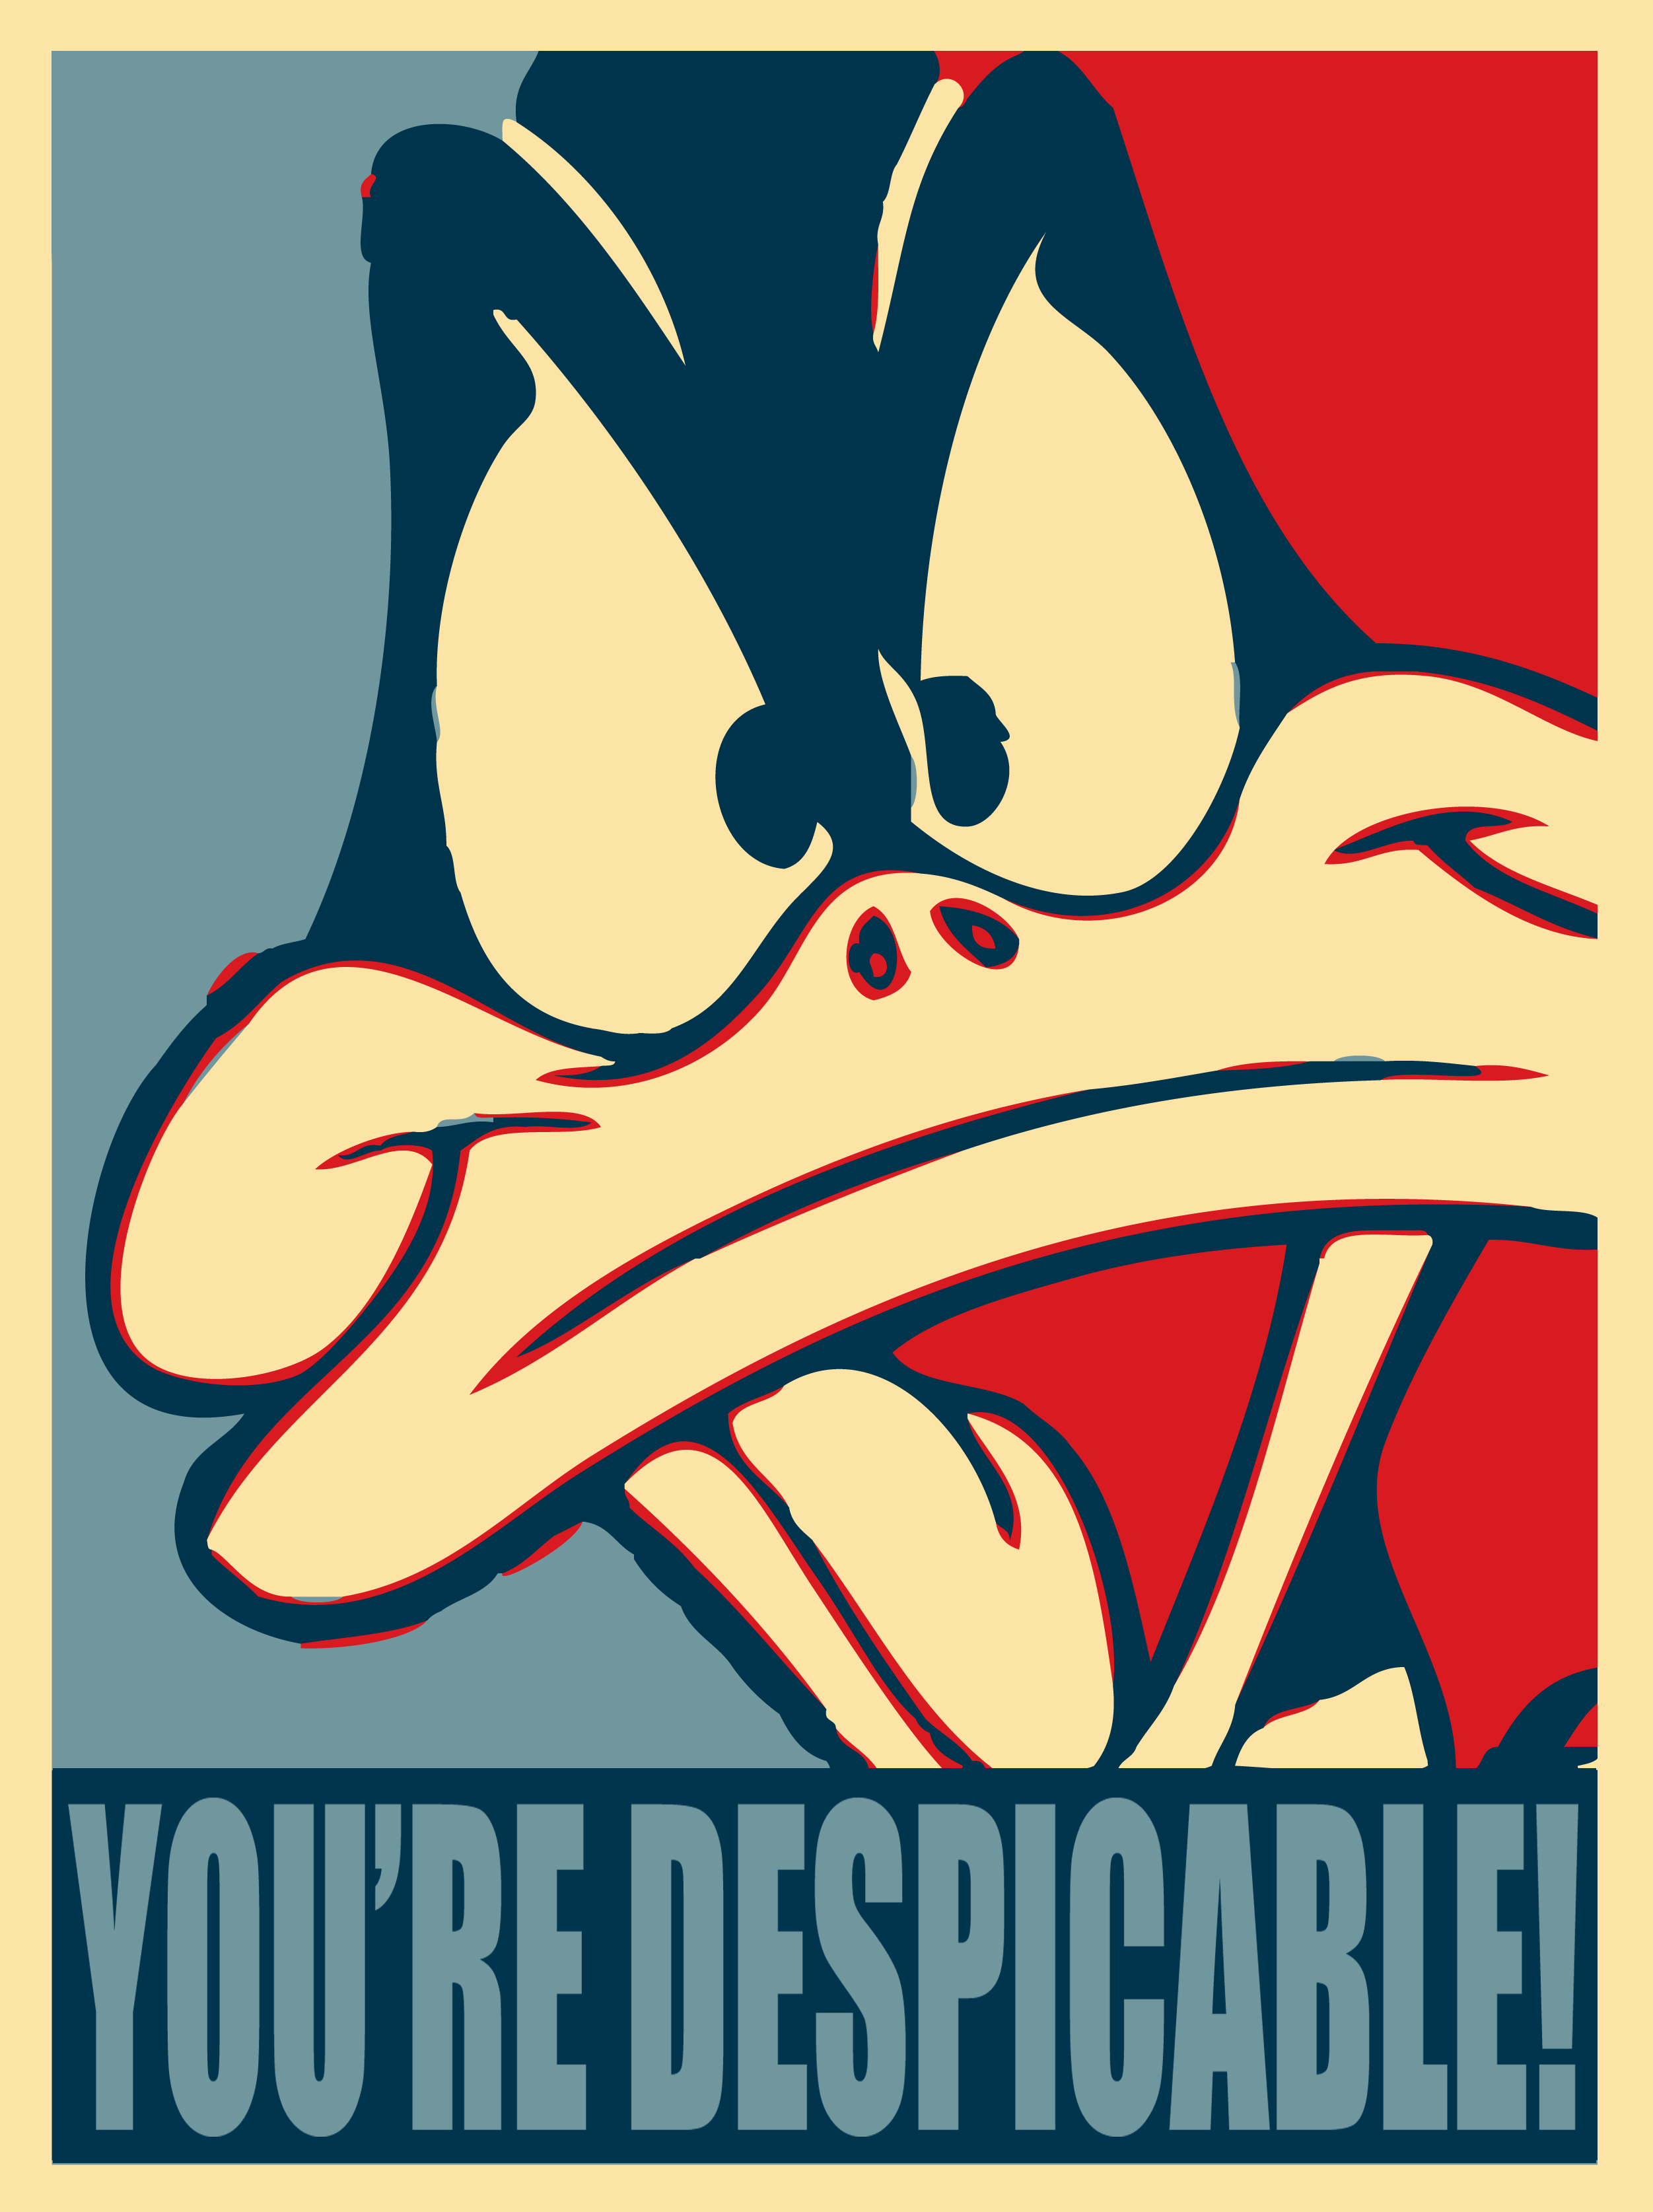 Daffy Duck Looney Tunes Youu0027re Despicable Funny Humor Poster